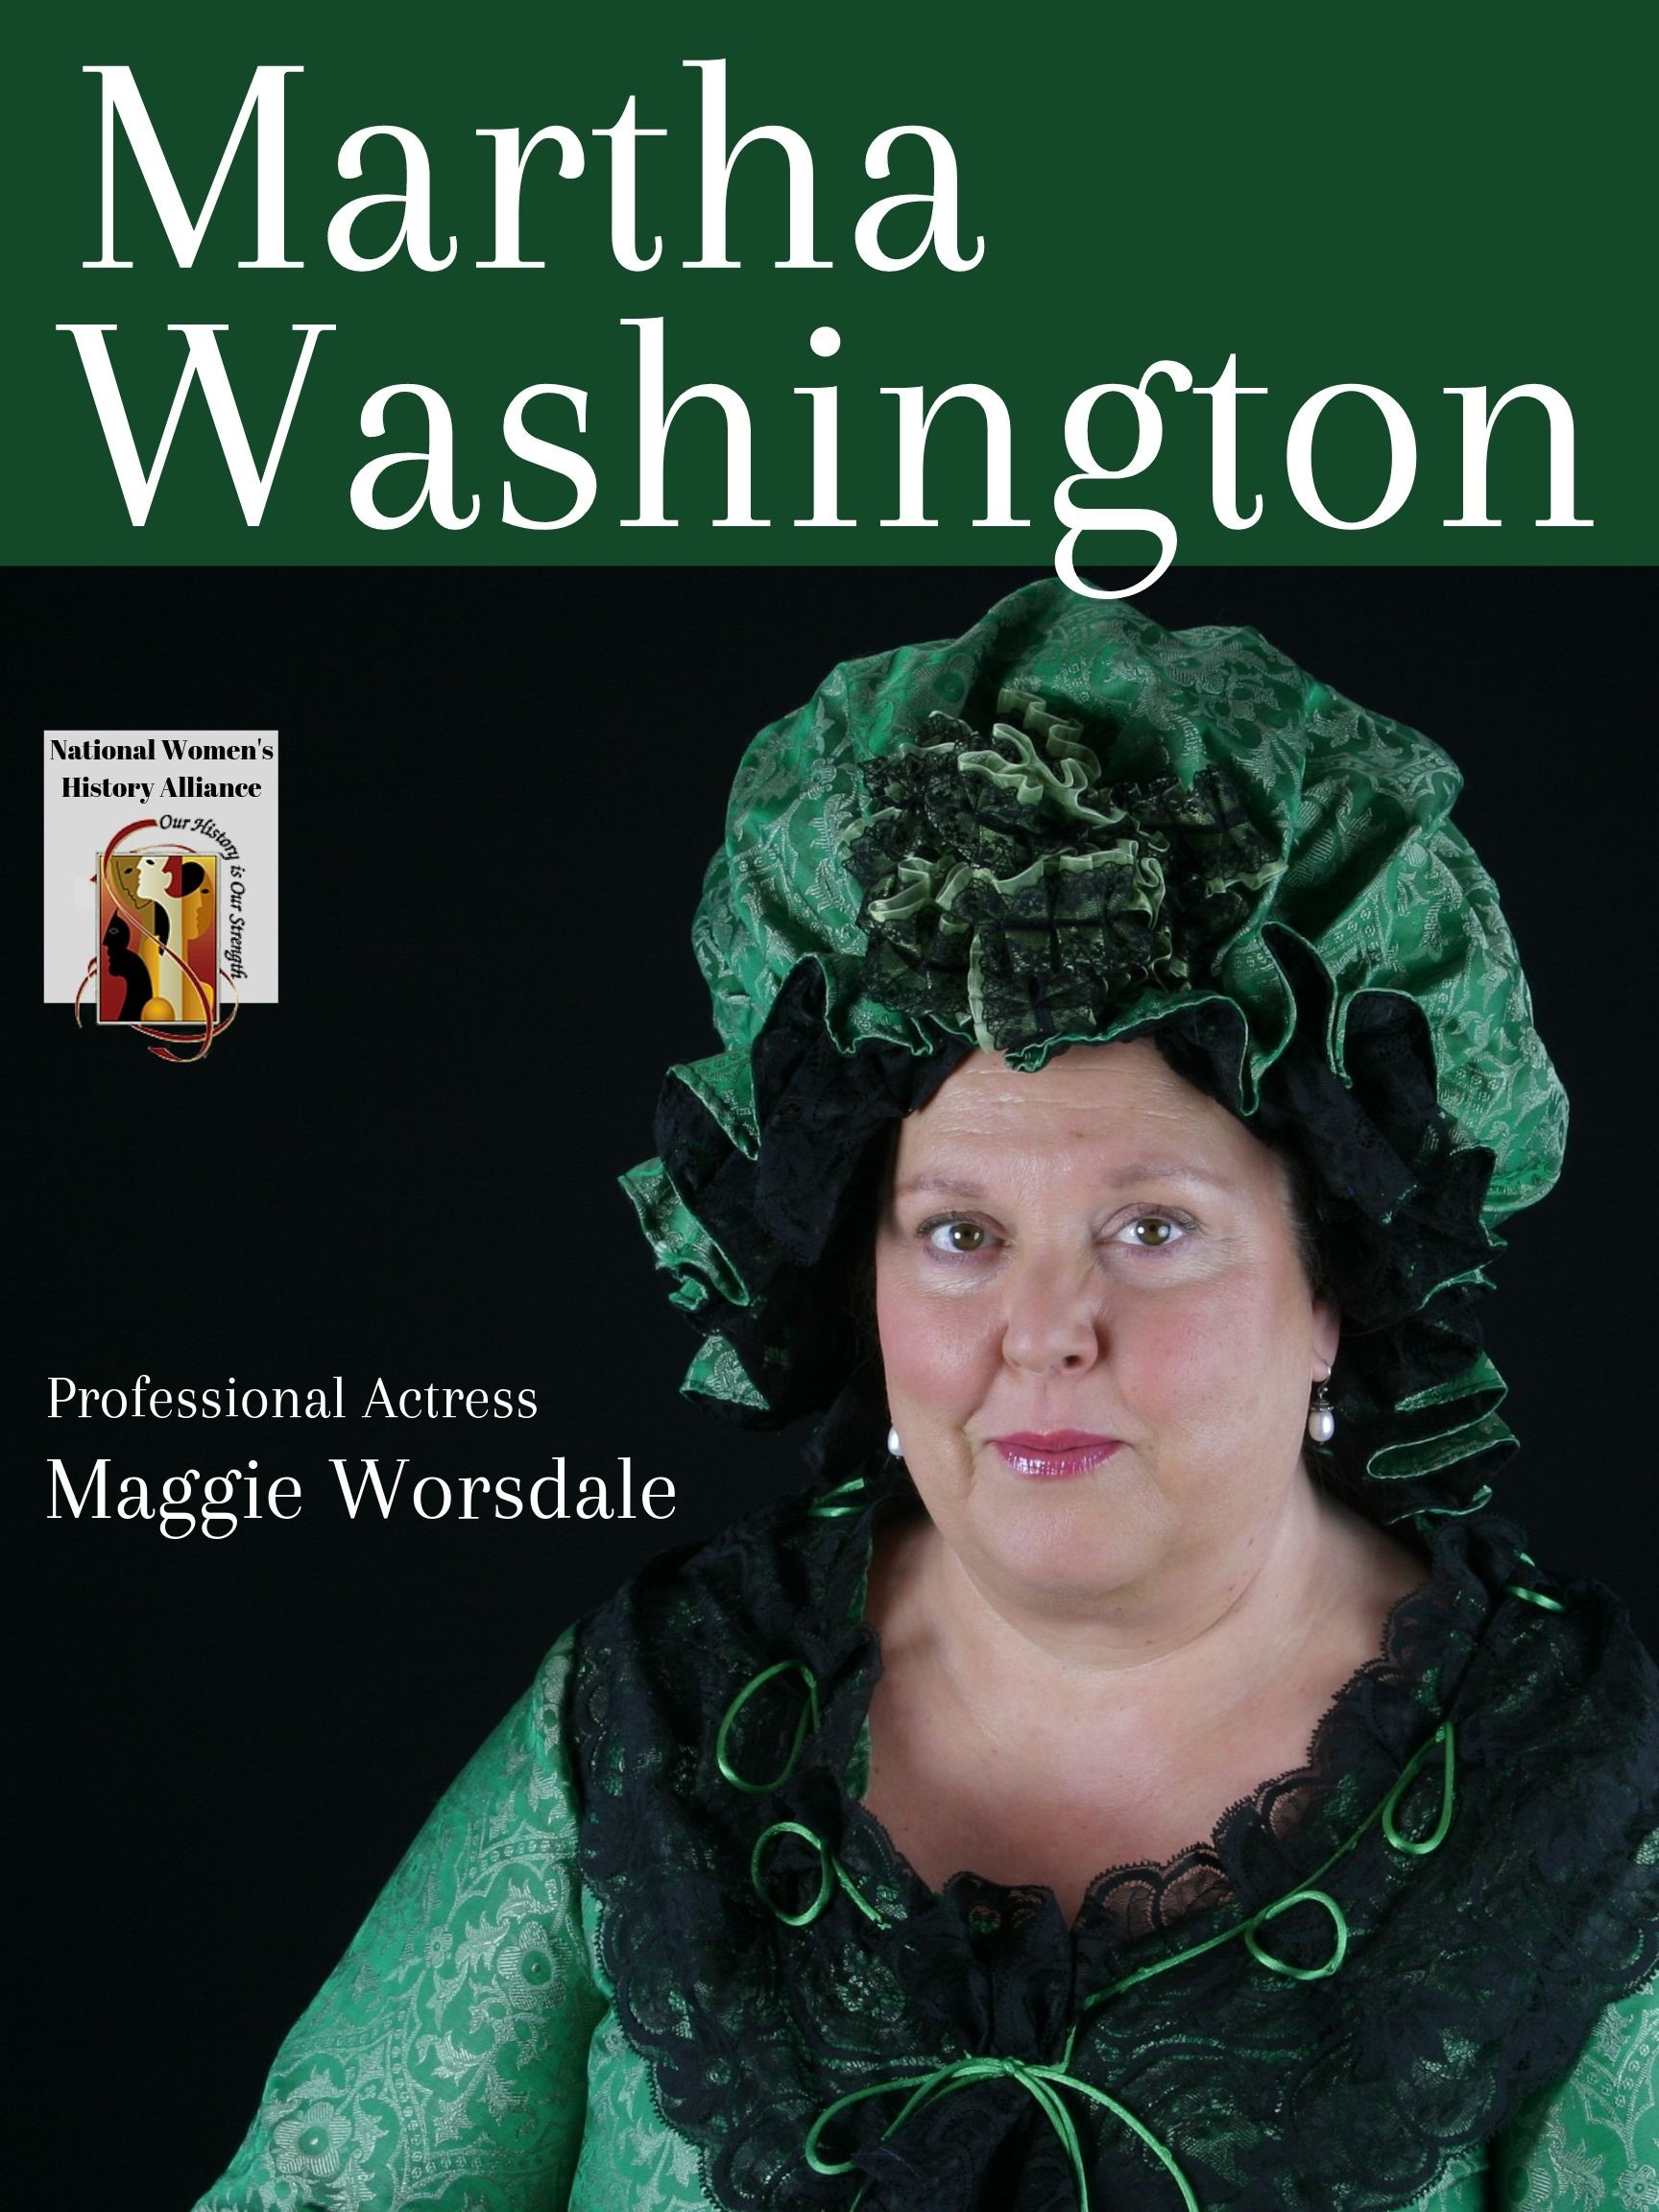 CANCELLED: Meet Martha Washington